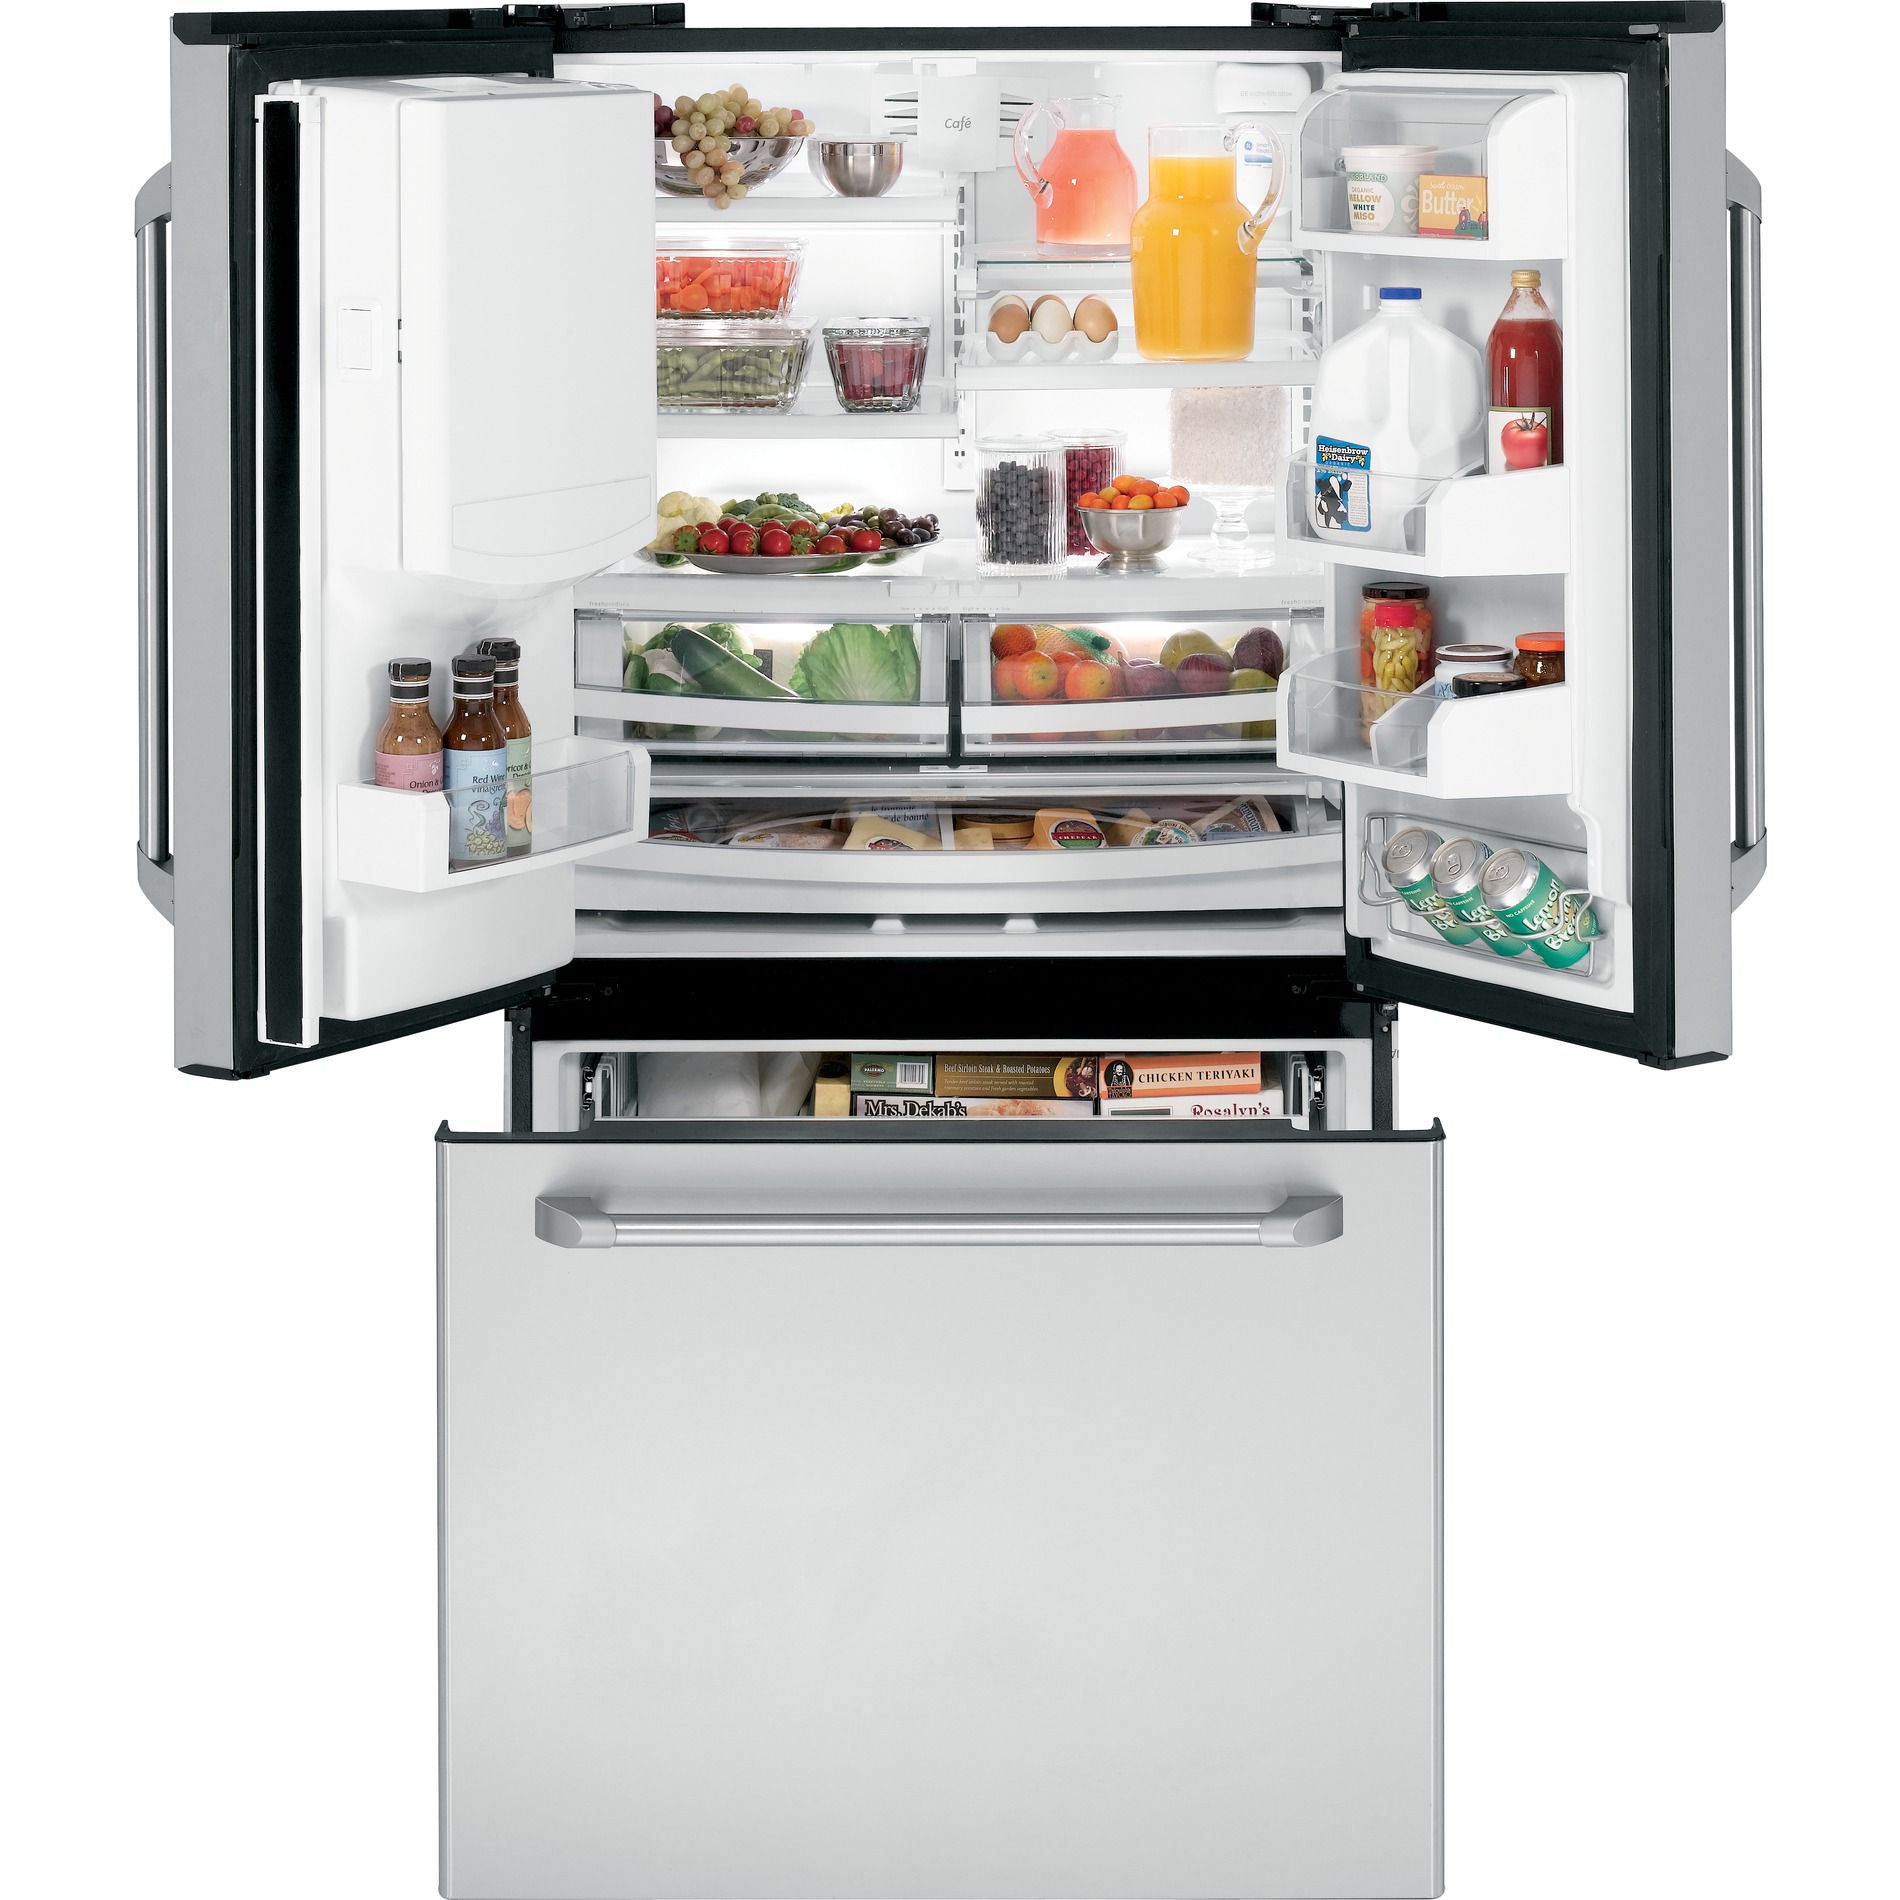 GE Café™ Series 21.3 cu. ft. Counter-Depth French Door Refrigerator - Stainless Steel